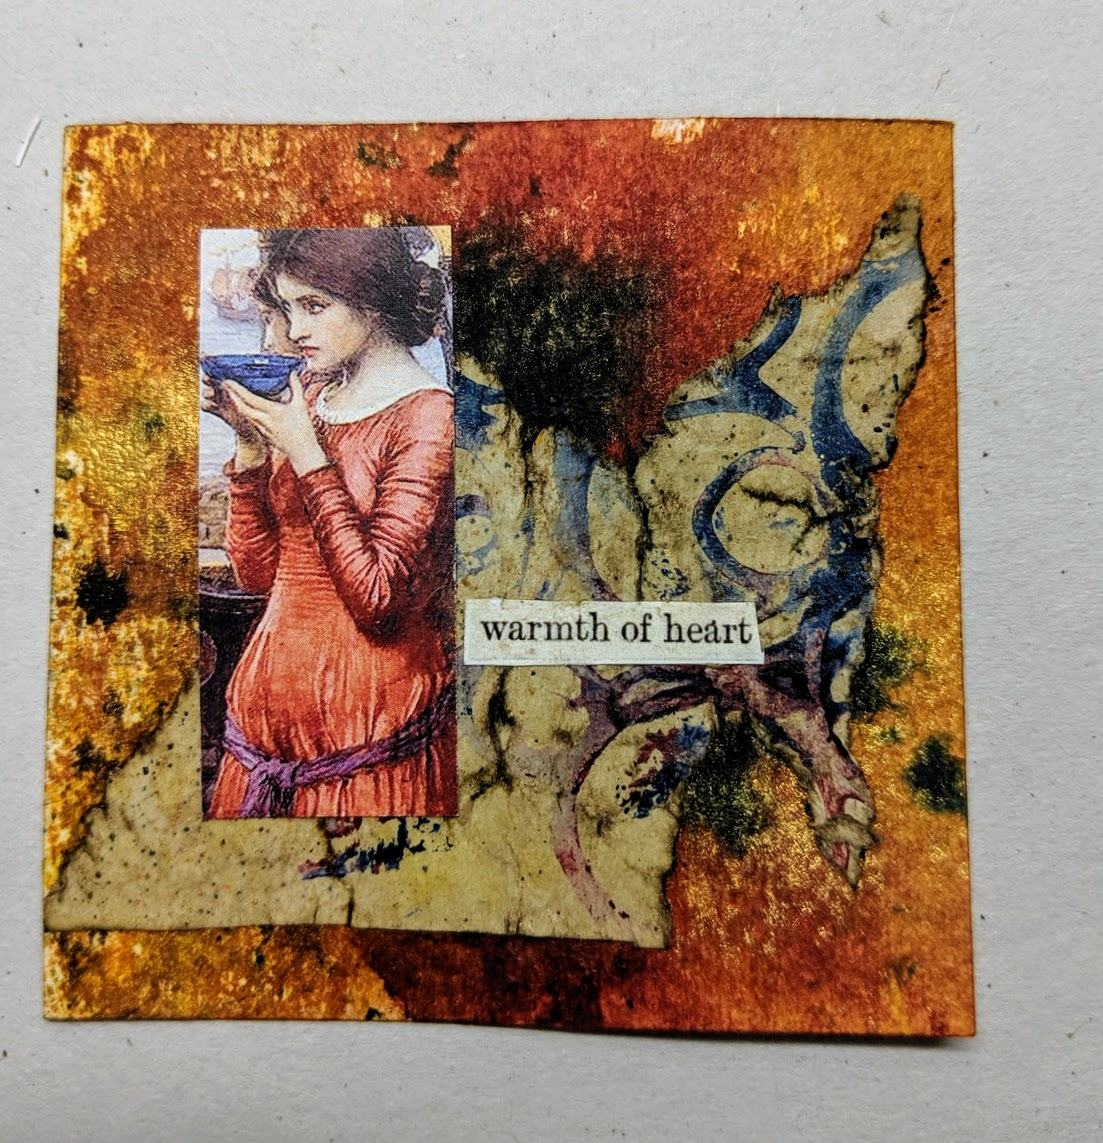 227: 3x3 card with dyes & collage